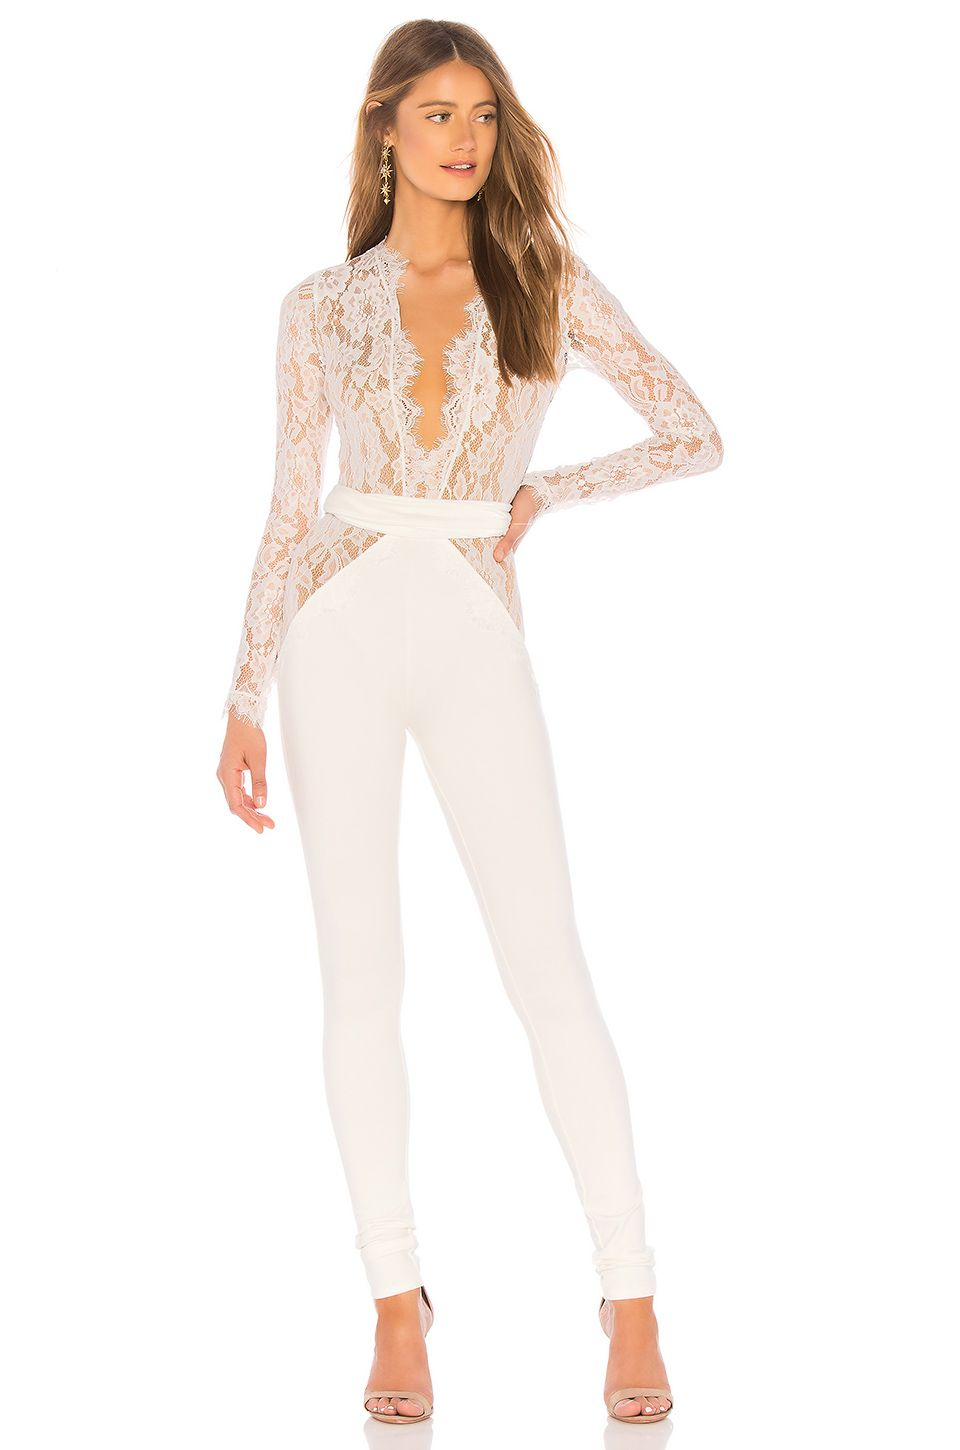 d4355a57fdc Michael Costello x REVOLVE Julian Jumpsuit in Ivory white lace wedding  jumpsuit long sleeve plunging elopement bridal shower engagement party  wedding outfit